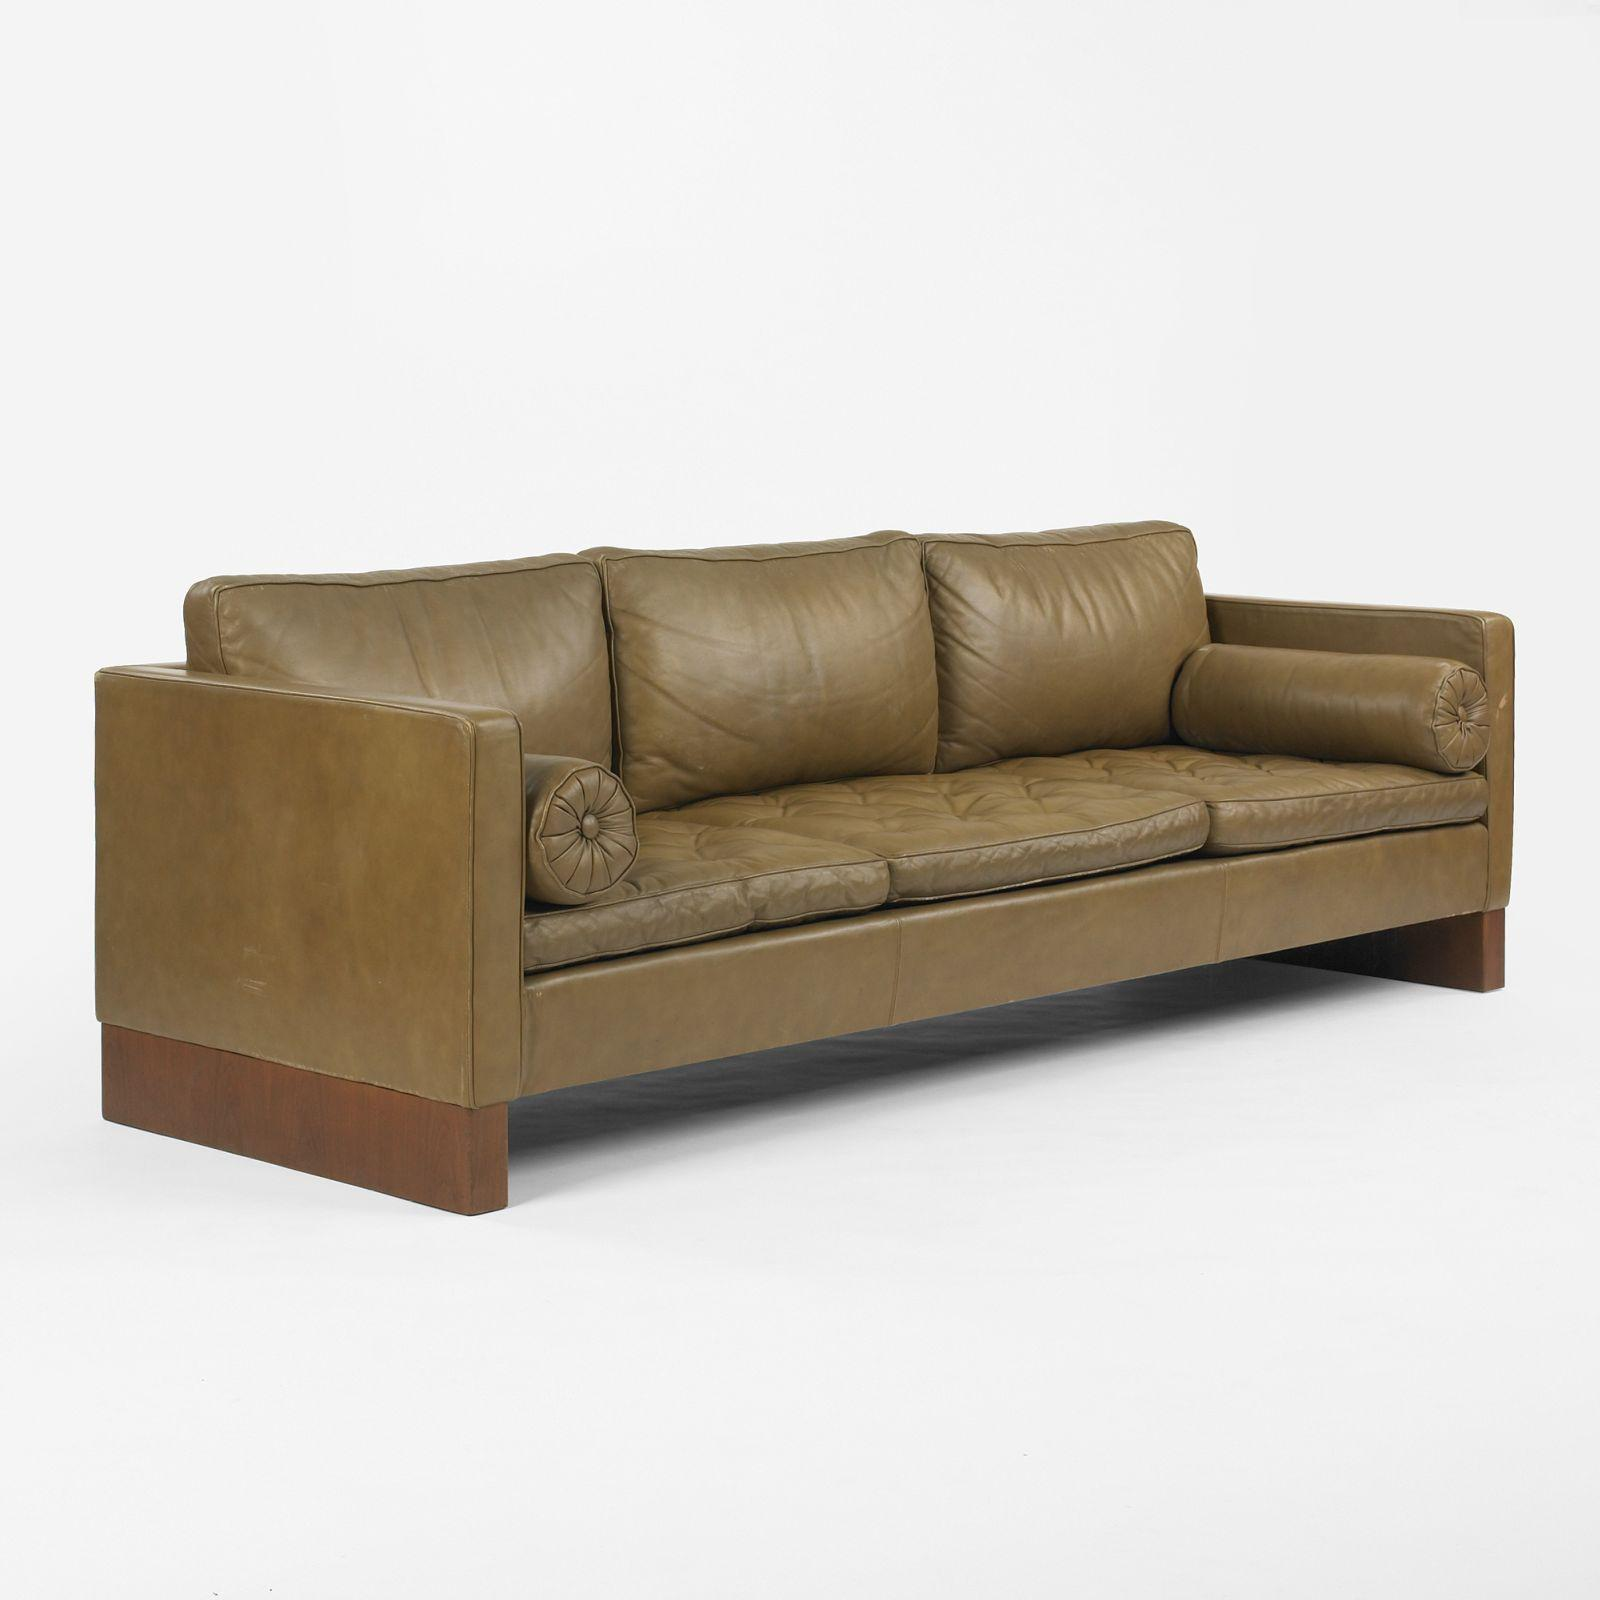 where to buy sofa seat for van backless daybed mies lc3 arm chair pull up a pinterest armchairs